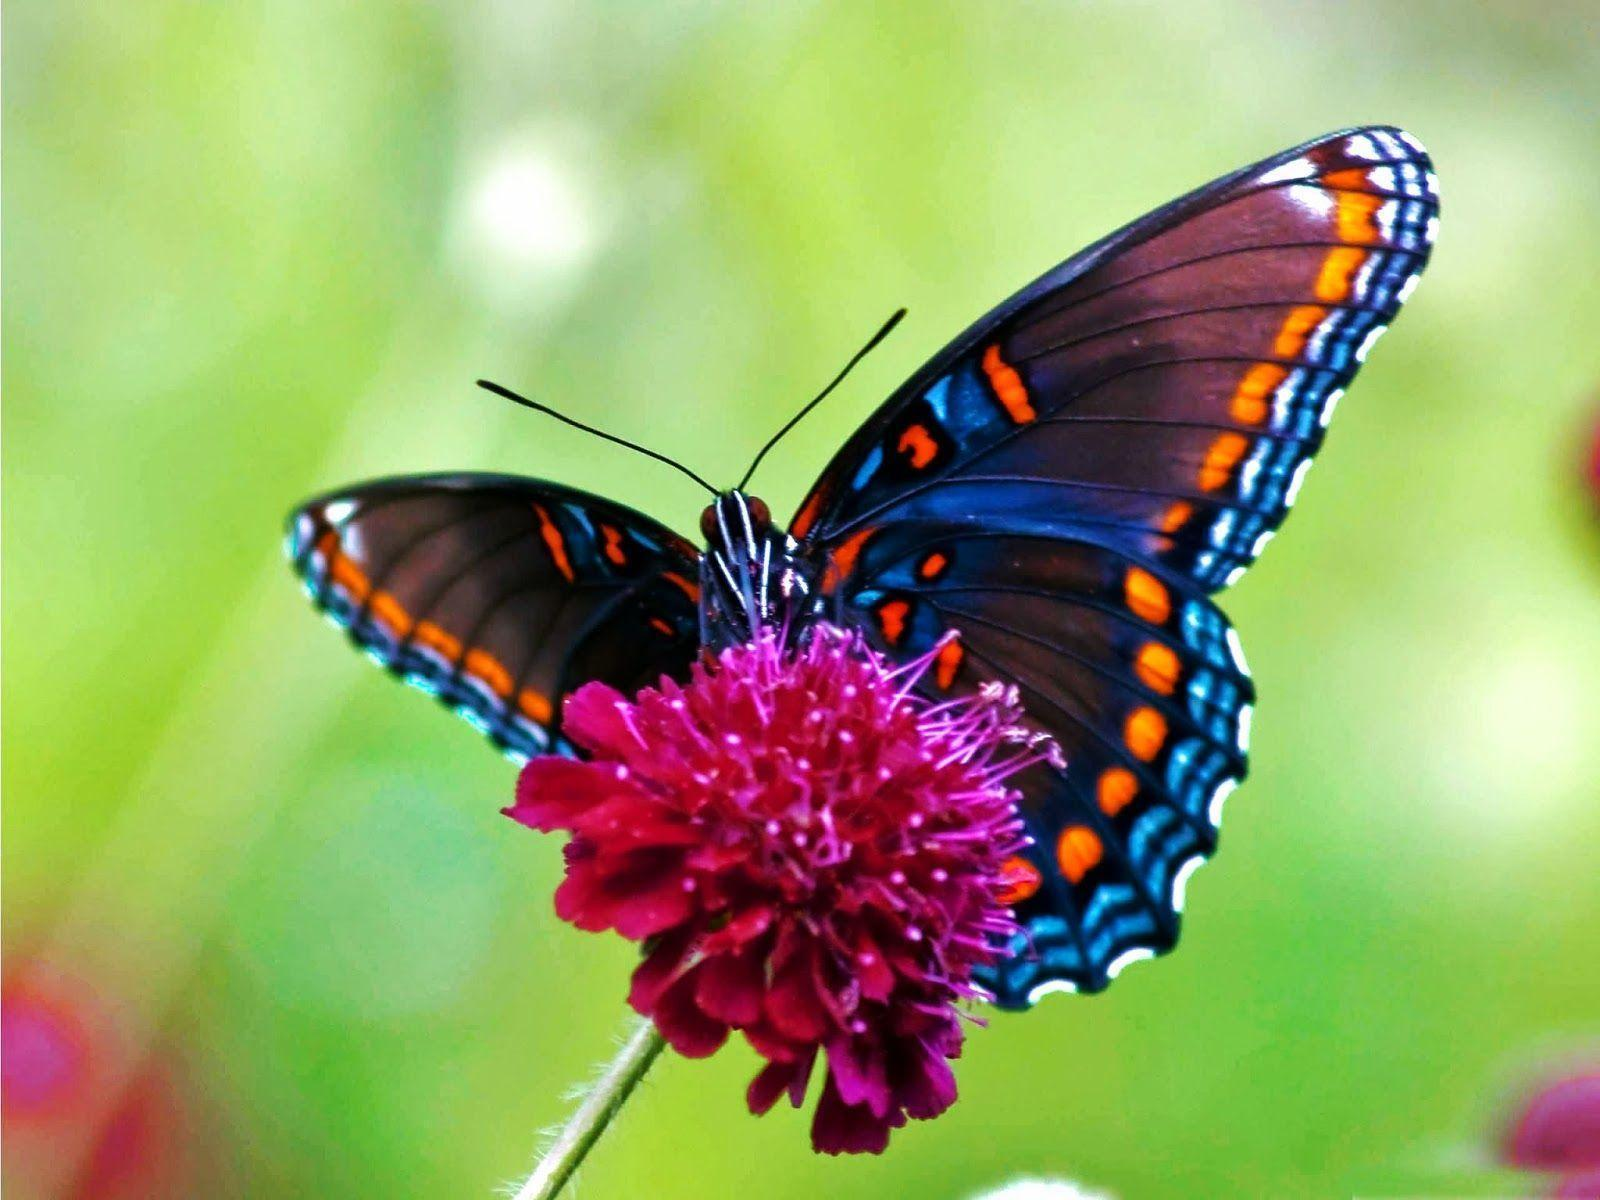 Free Butterfly Wallpapers   Wallpaper Cave Free Butterfly Wallpaper Downloads   coolstyle wallpapers